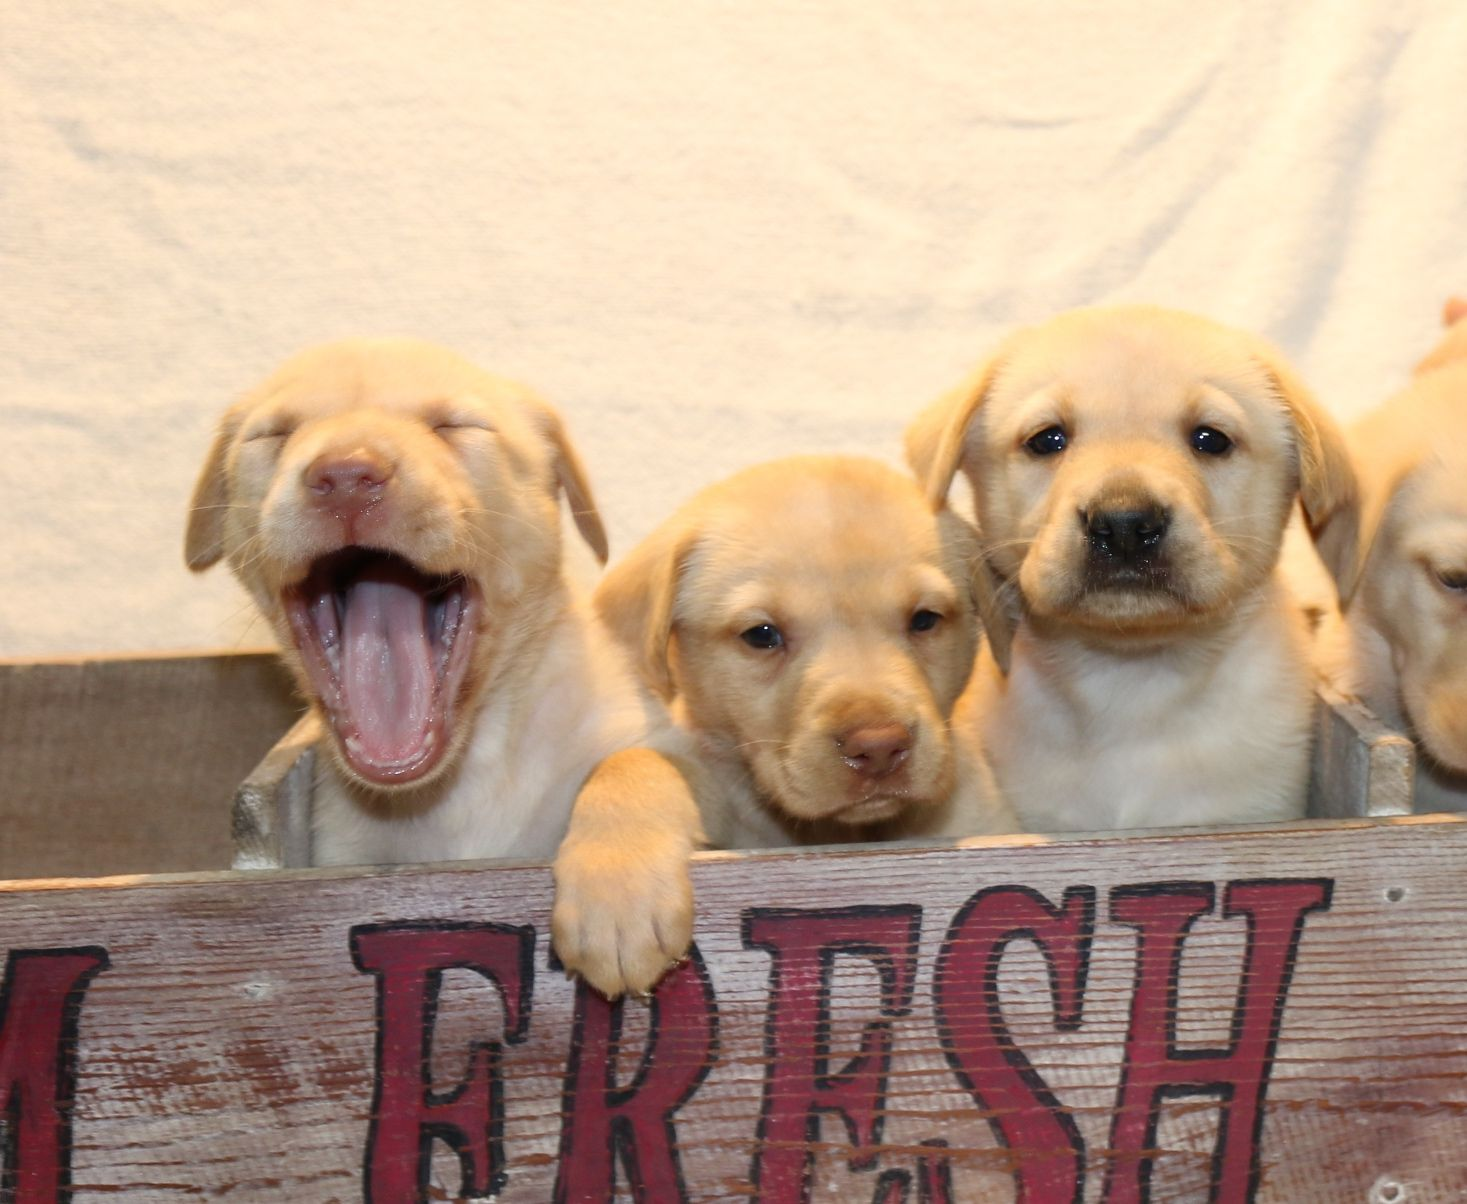 Christmas Puppies For Sale Akc Registered British Labrador Retrievers We Currently Have 3 Yellow Ma Labrador Puppies For Sale Puppies For Sale Labrador Puppy